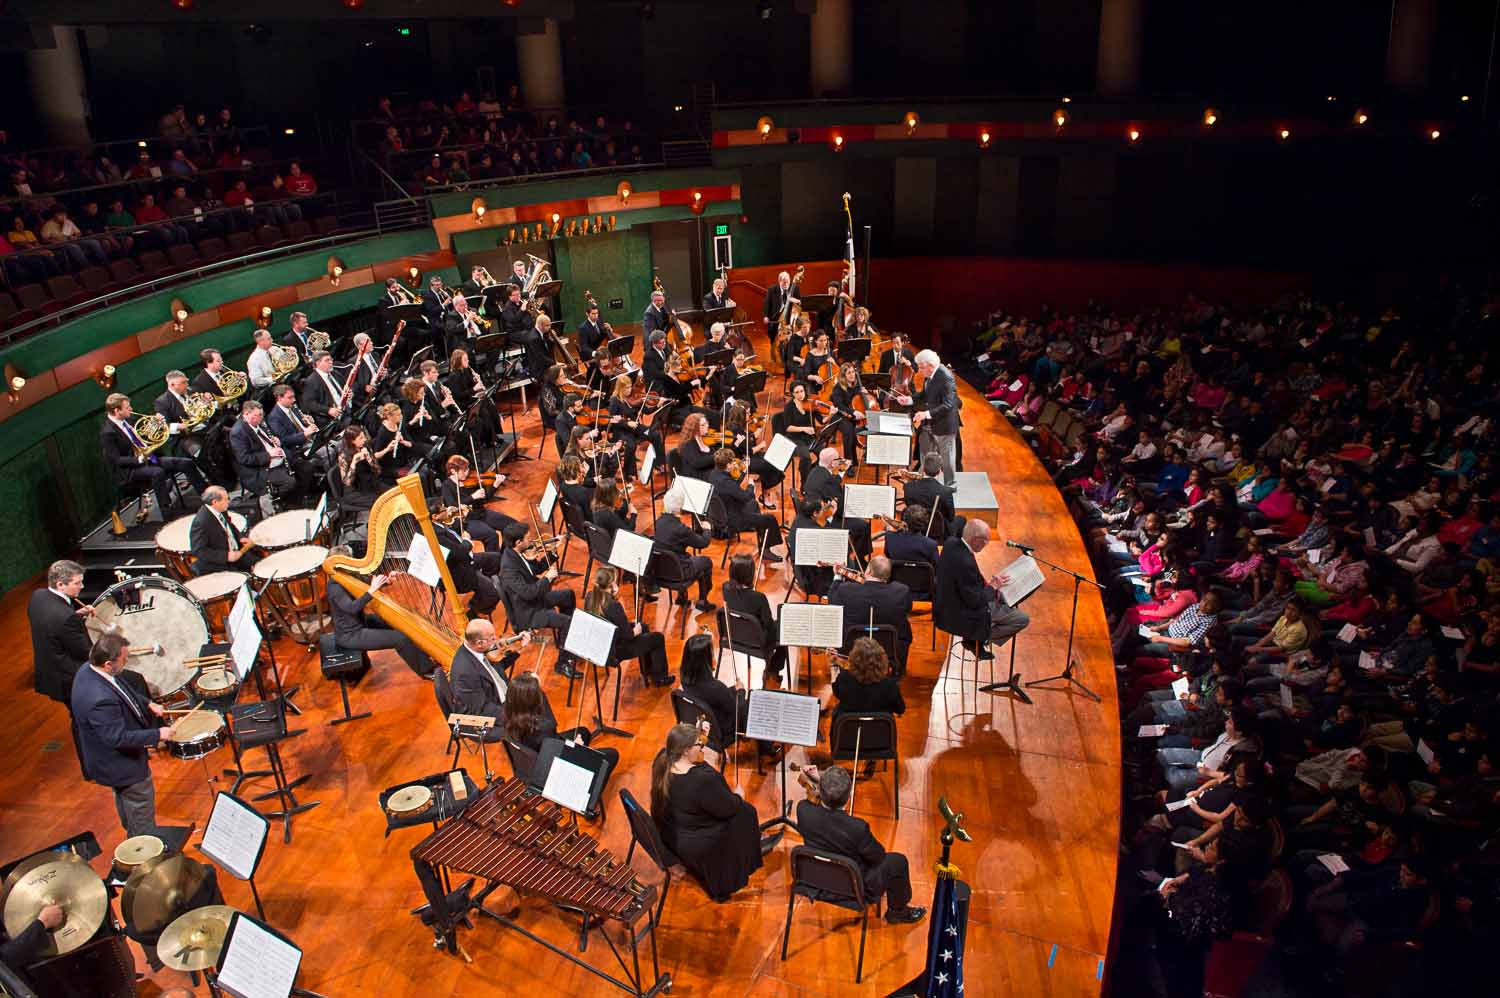 The Corpus Christi Symphony Orchestra auditions maestro applicants live throughout the 2016-17 season. Courtesy photo